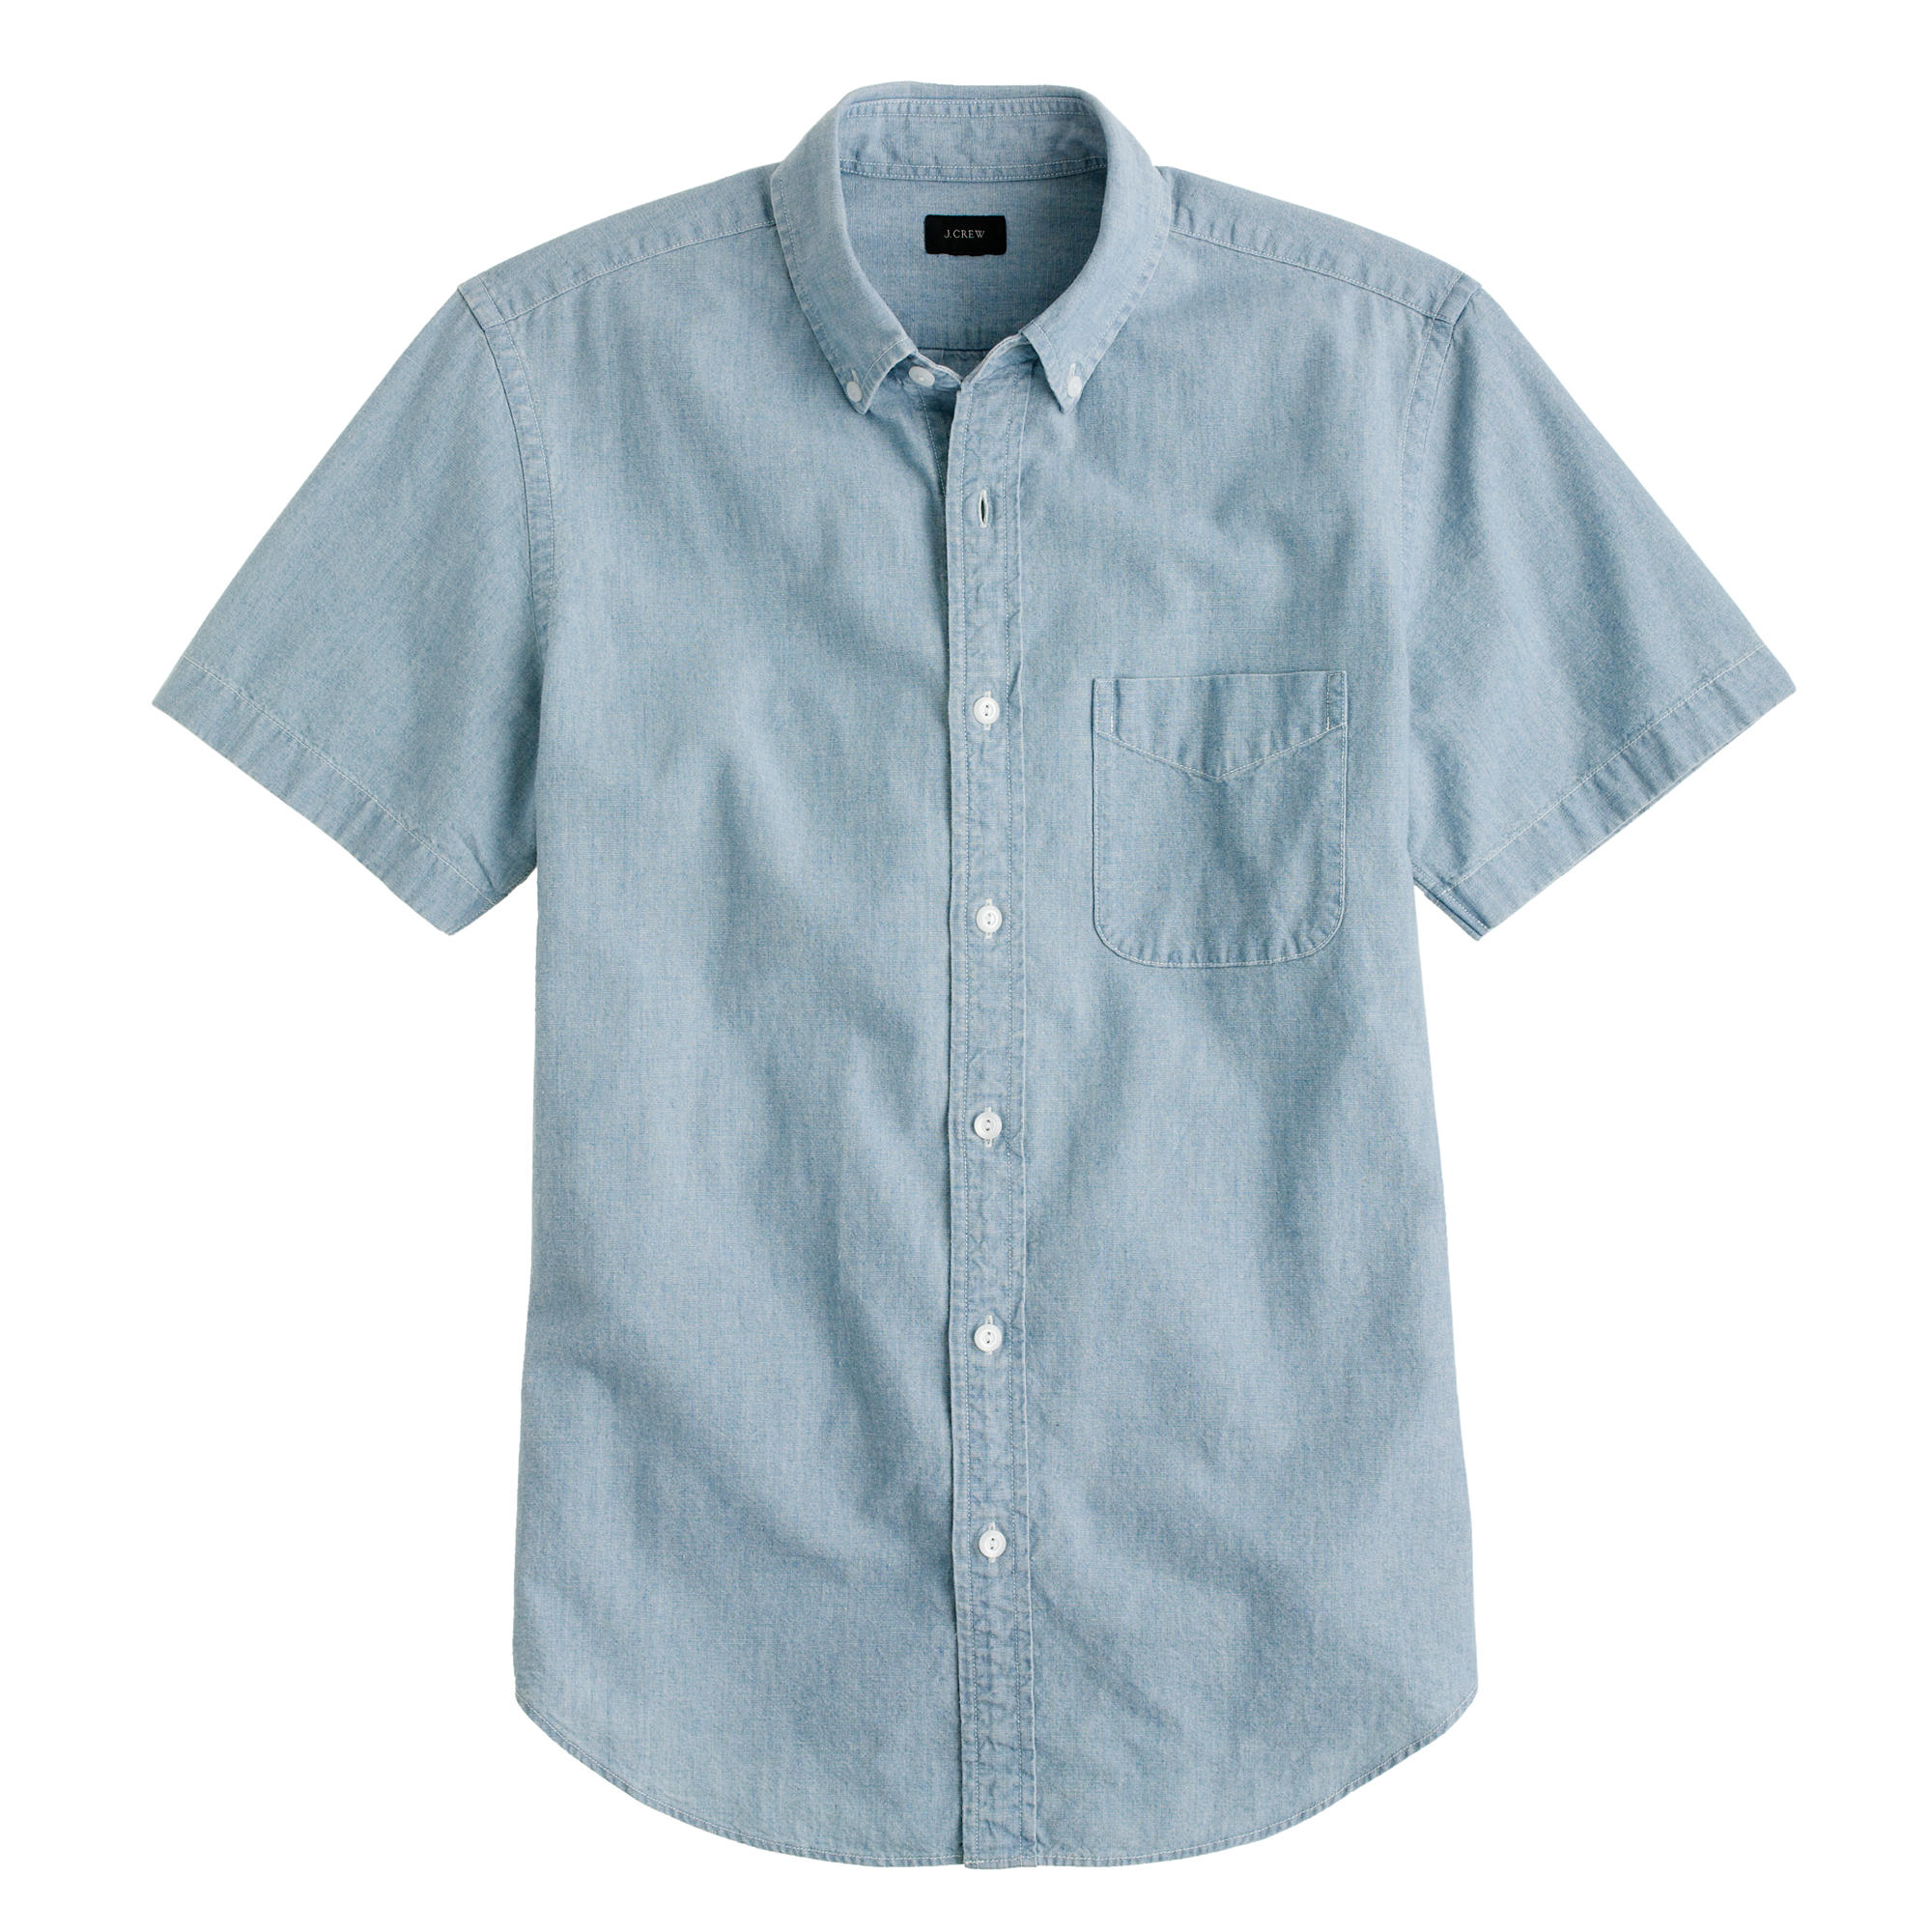 Key Men's 45 Blue Chambray Short-Sleeve Shirt, you will. With a men's shirt like this, you'll have durable, reliable workwear that you help you lo4/5(11).